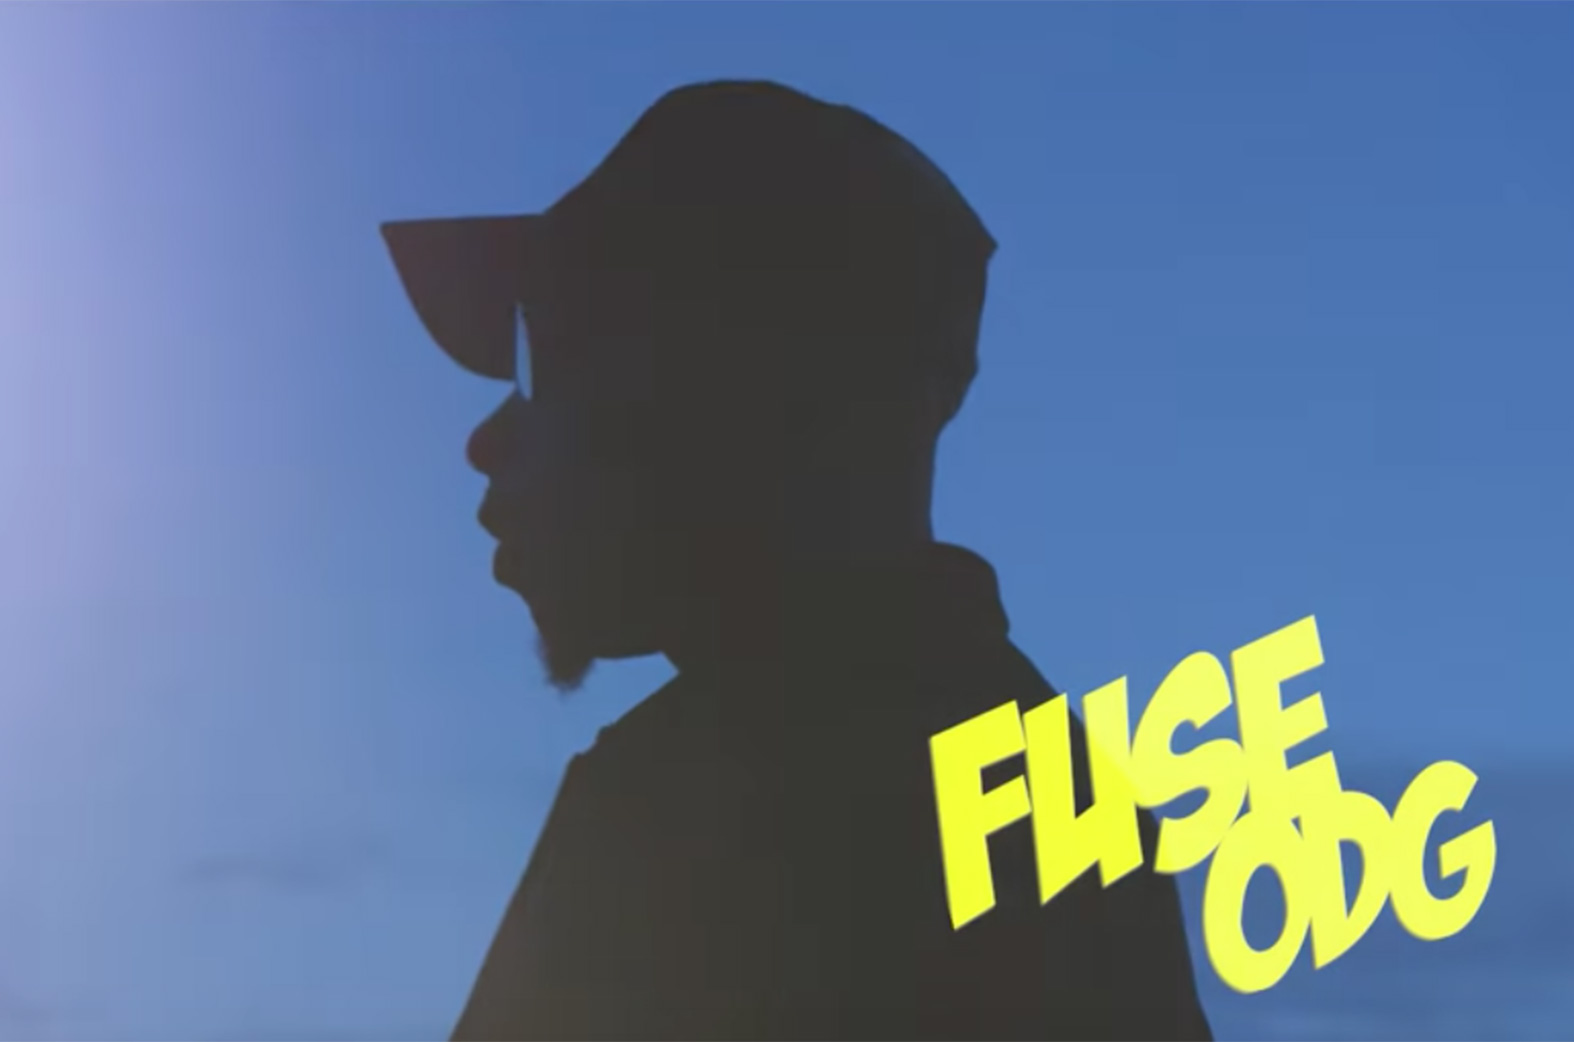 No Daylight by Fuse ODG